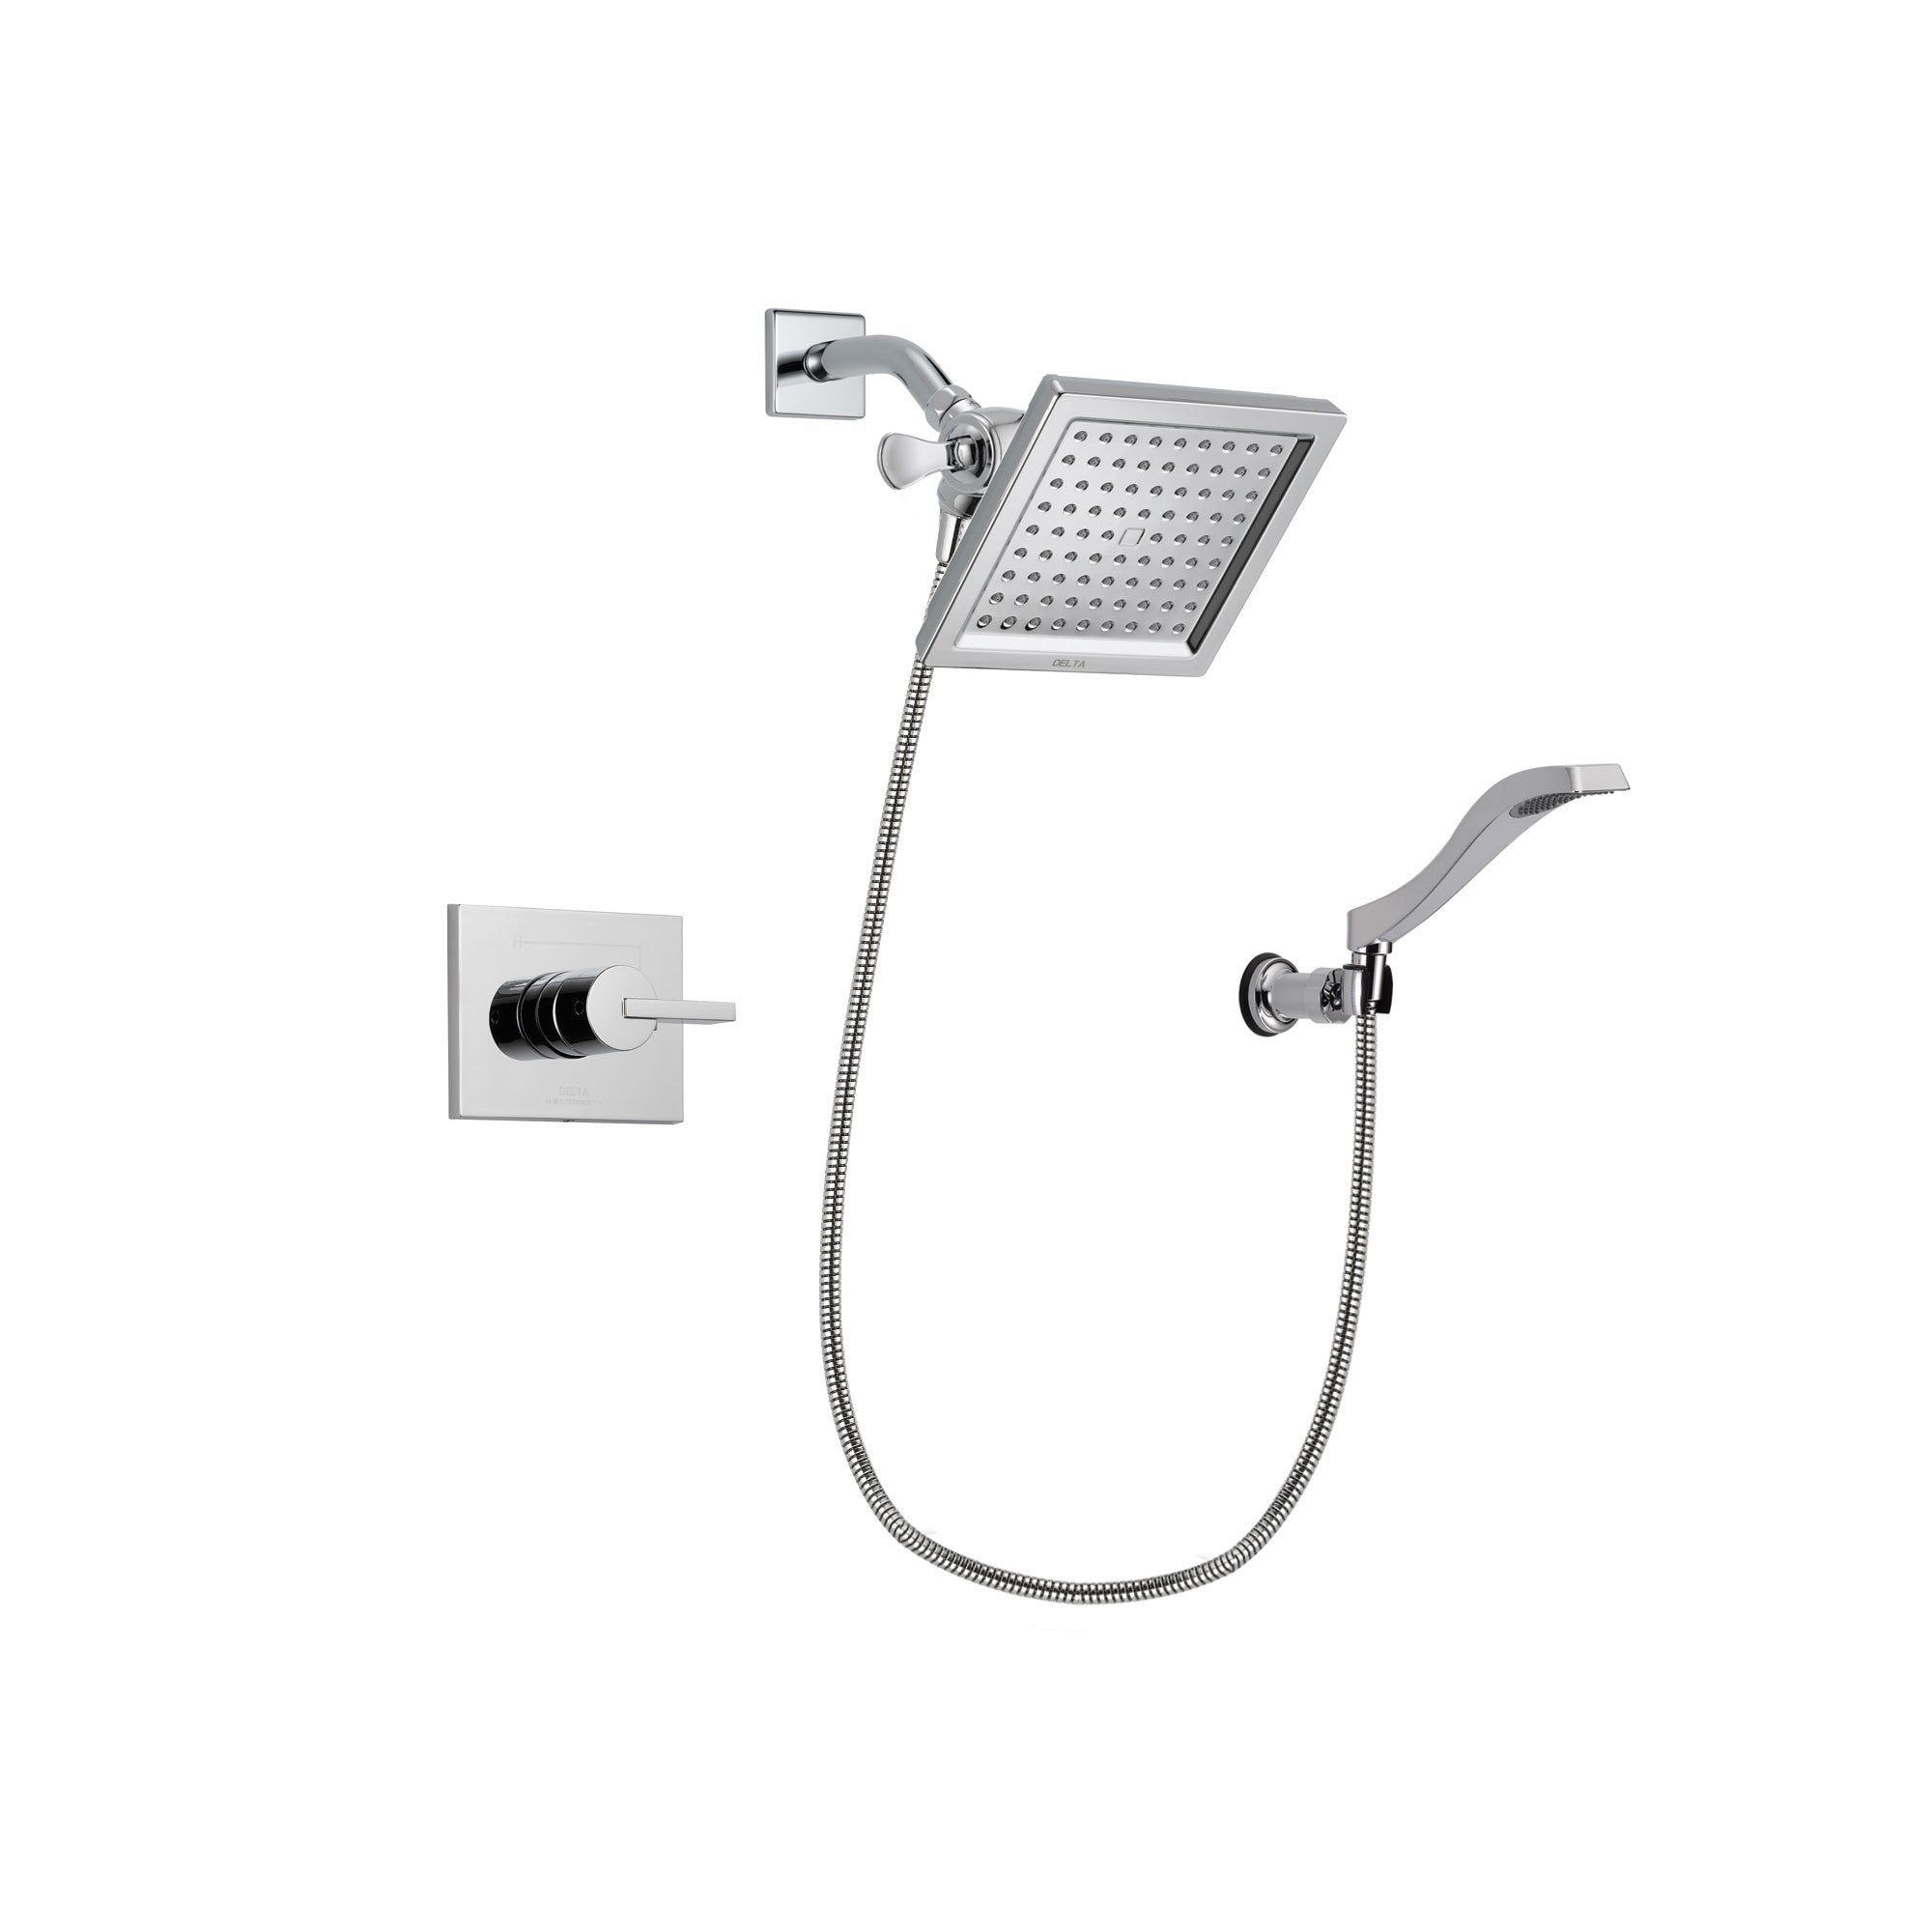 Delta Vero Chrome Shower Faucet System with Shower Head and Hand Shower DSP0025V